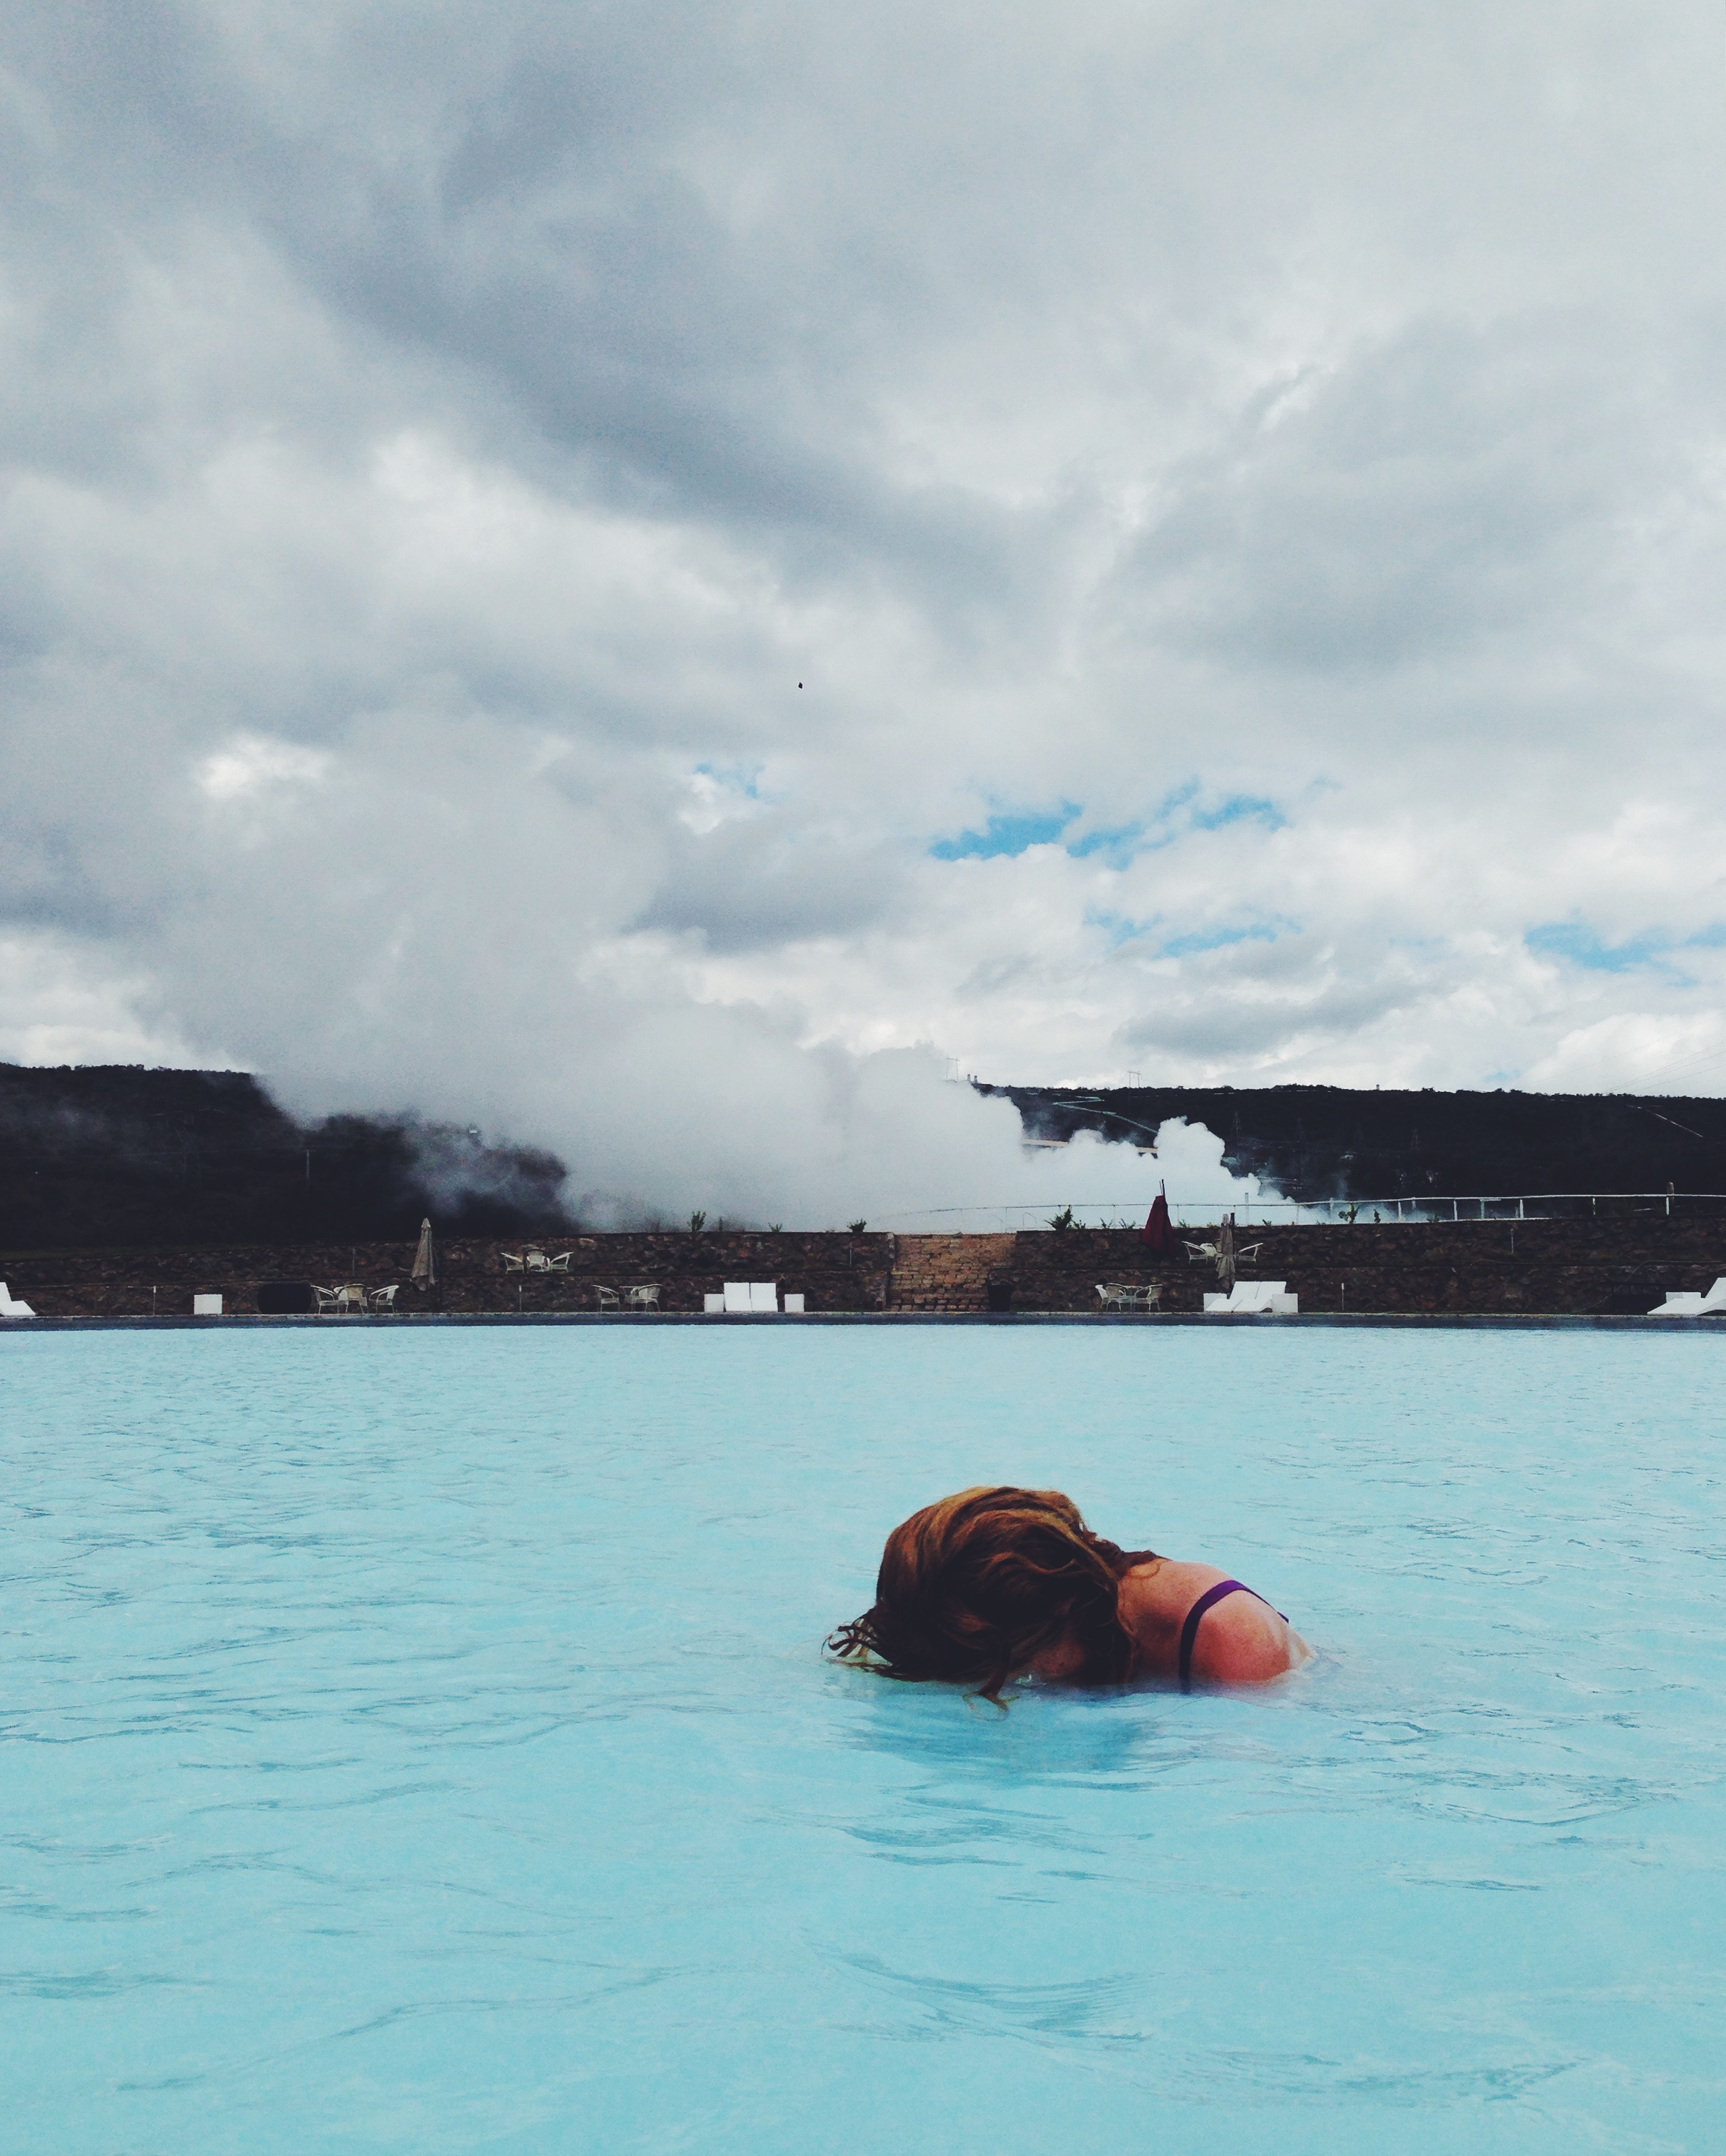 The geothermal spa with one of the cooling lagoons steaming, behind.